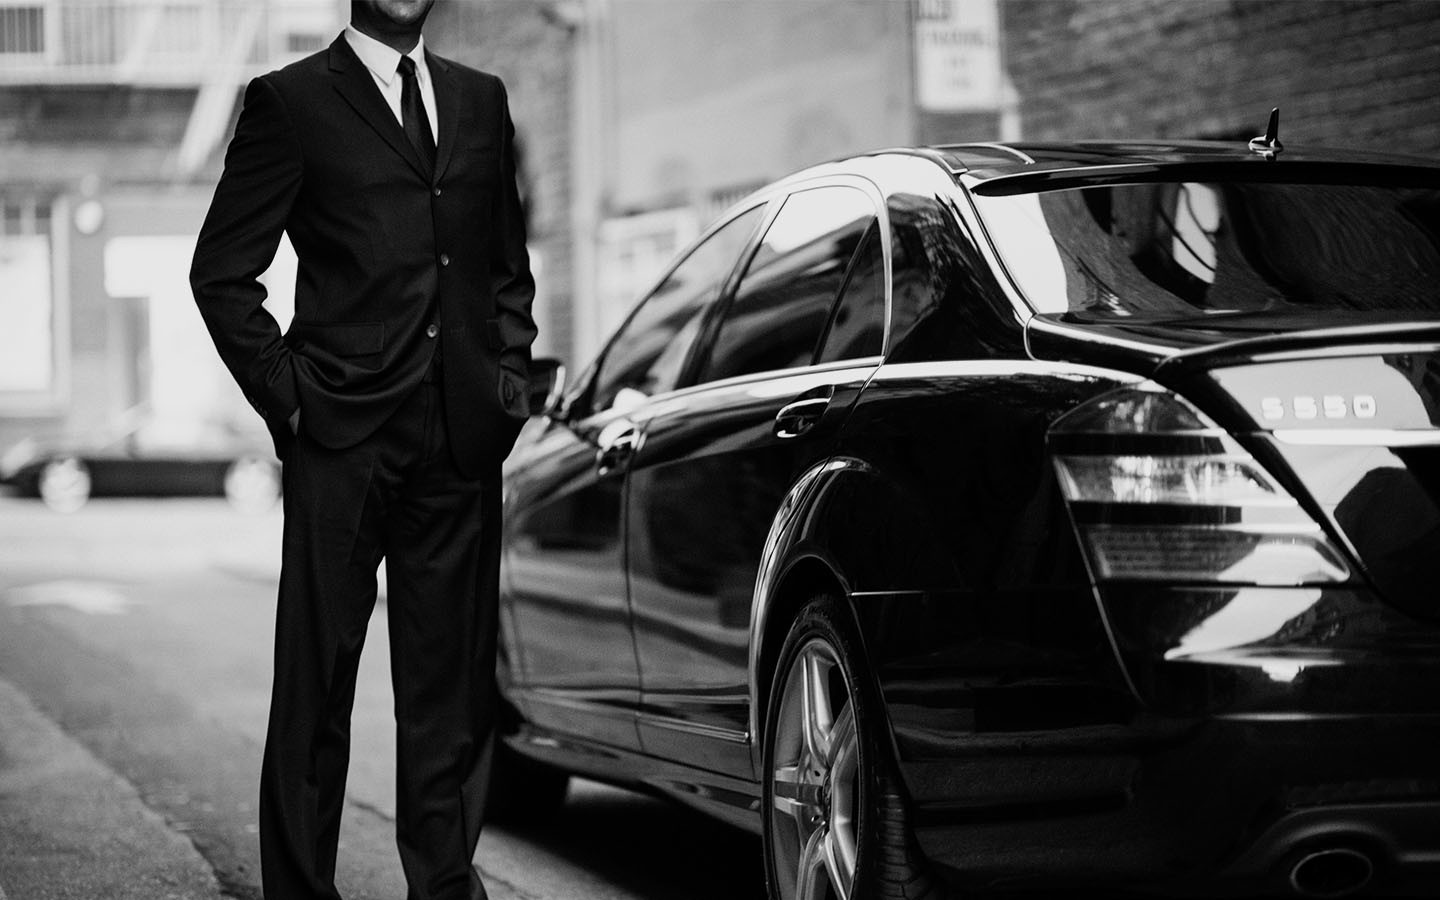 Know More About Experts Chauffeur Services